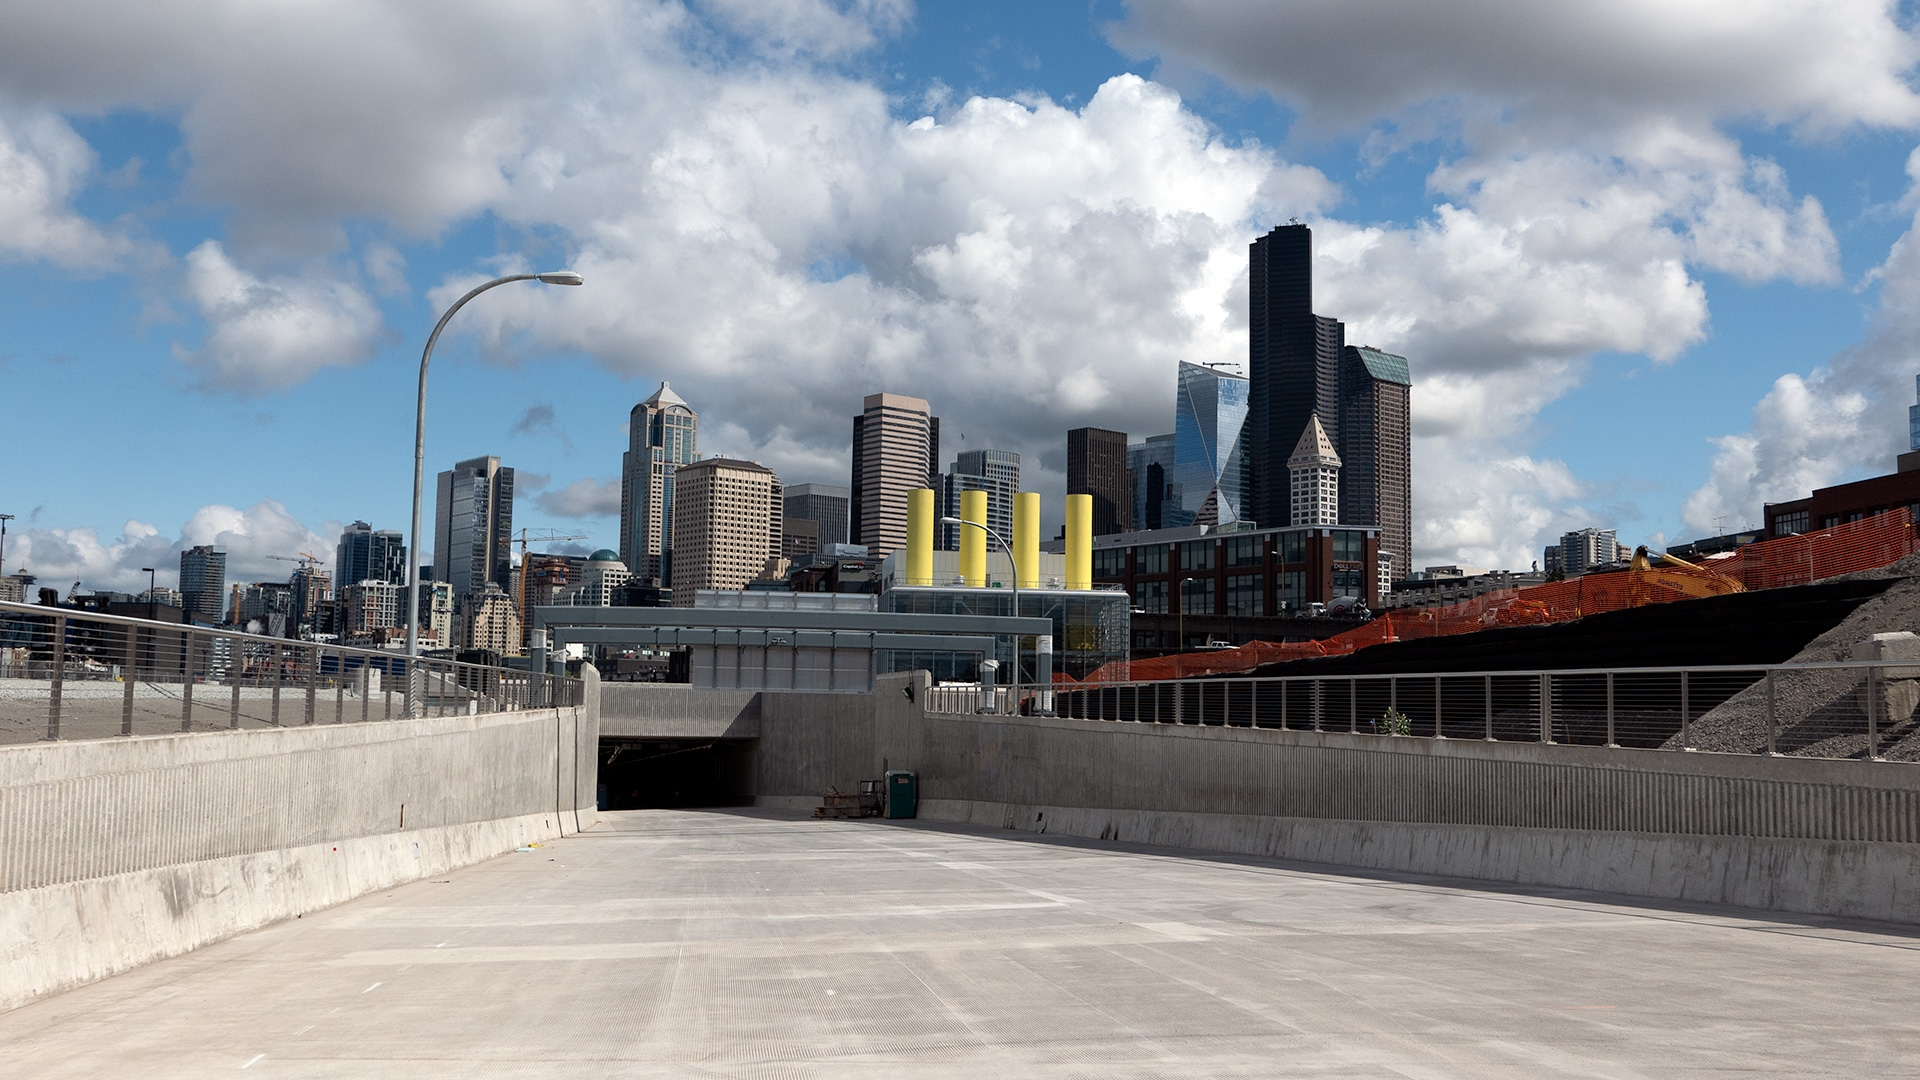 Alaskan Way Replacement Tunnel soon open